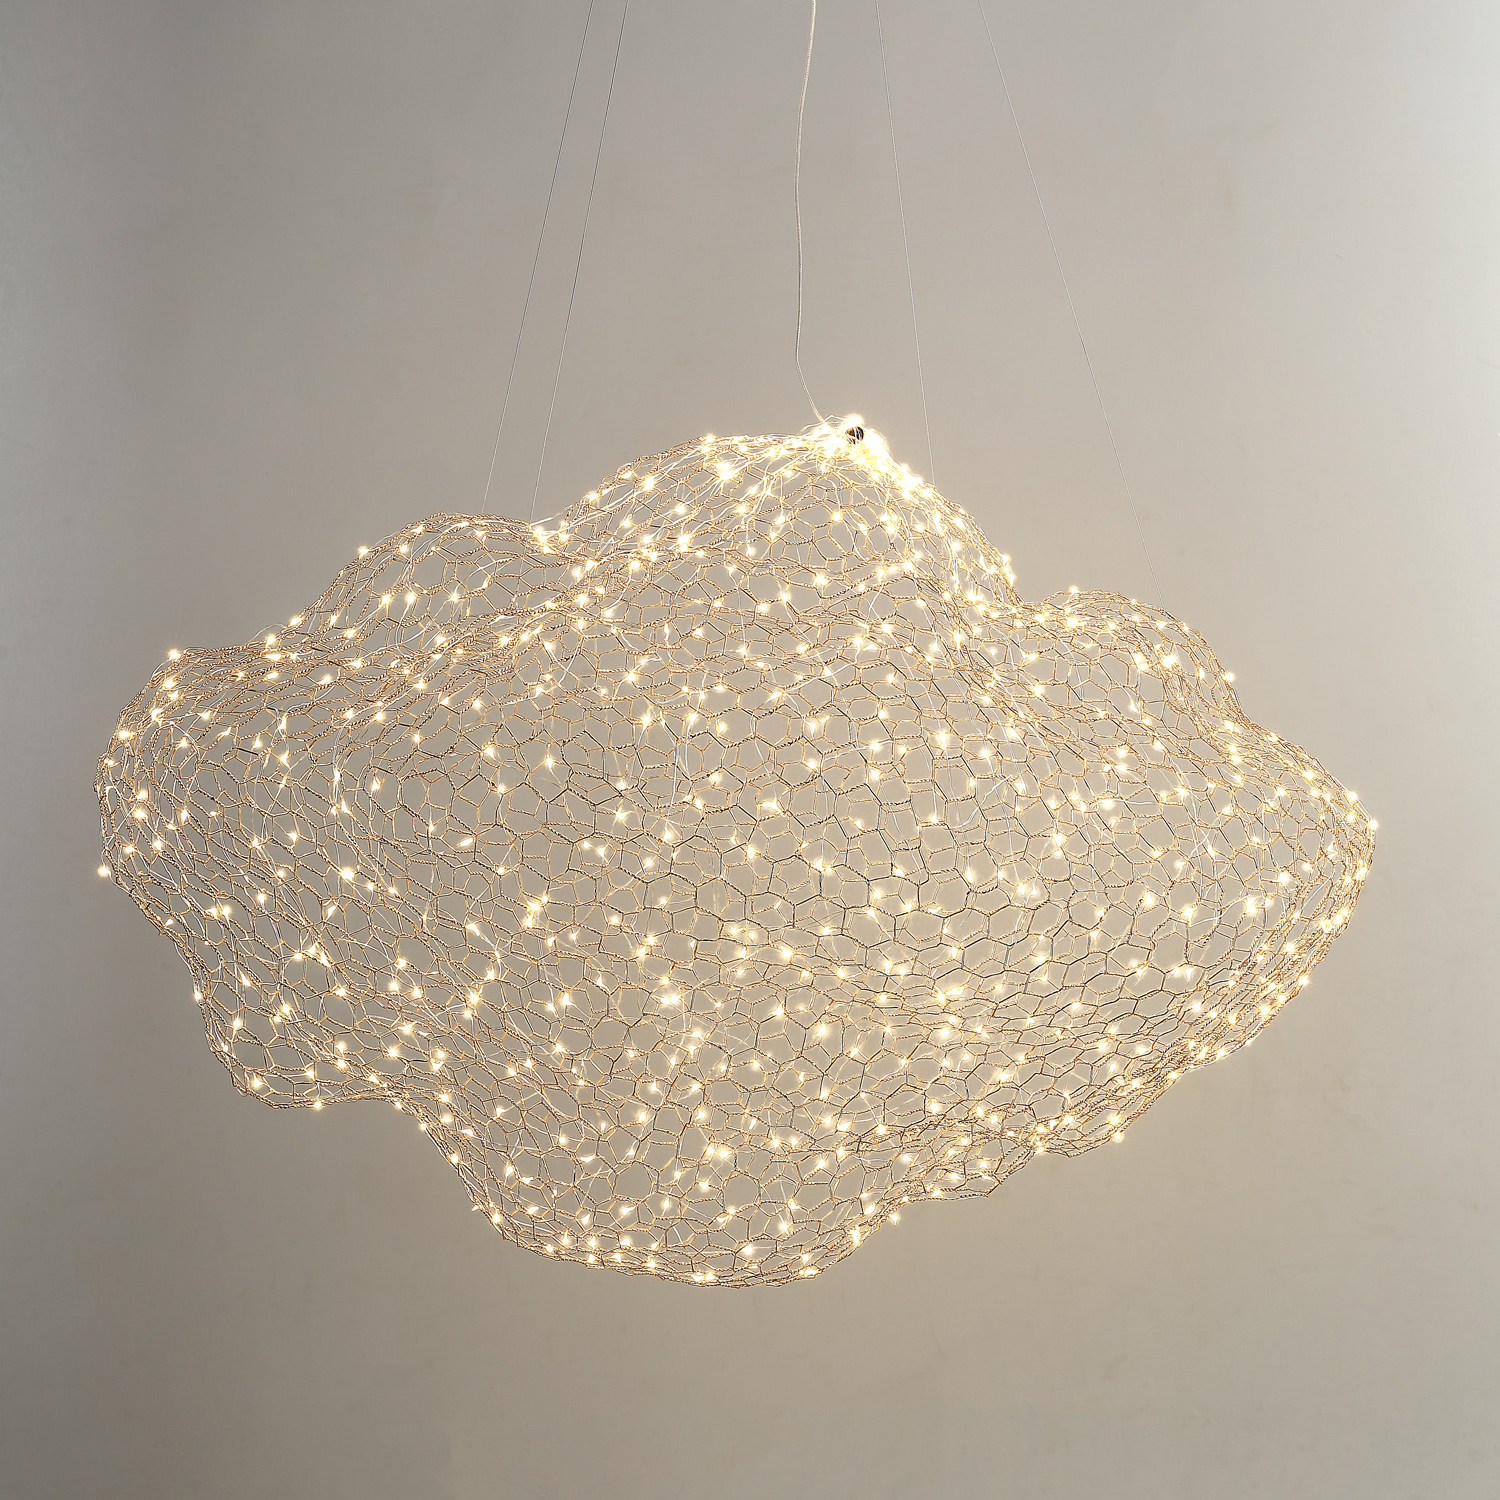 LED Cloud | ASTELE